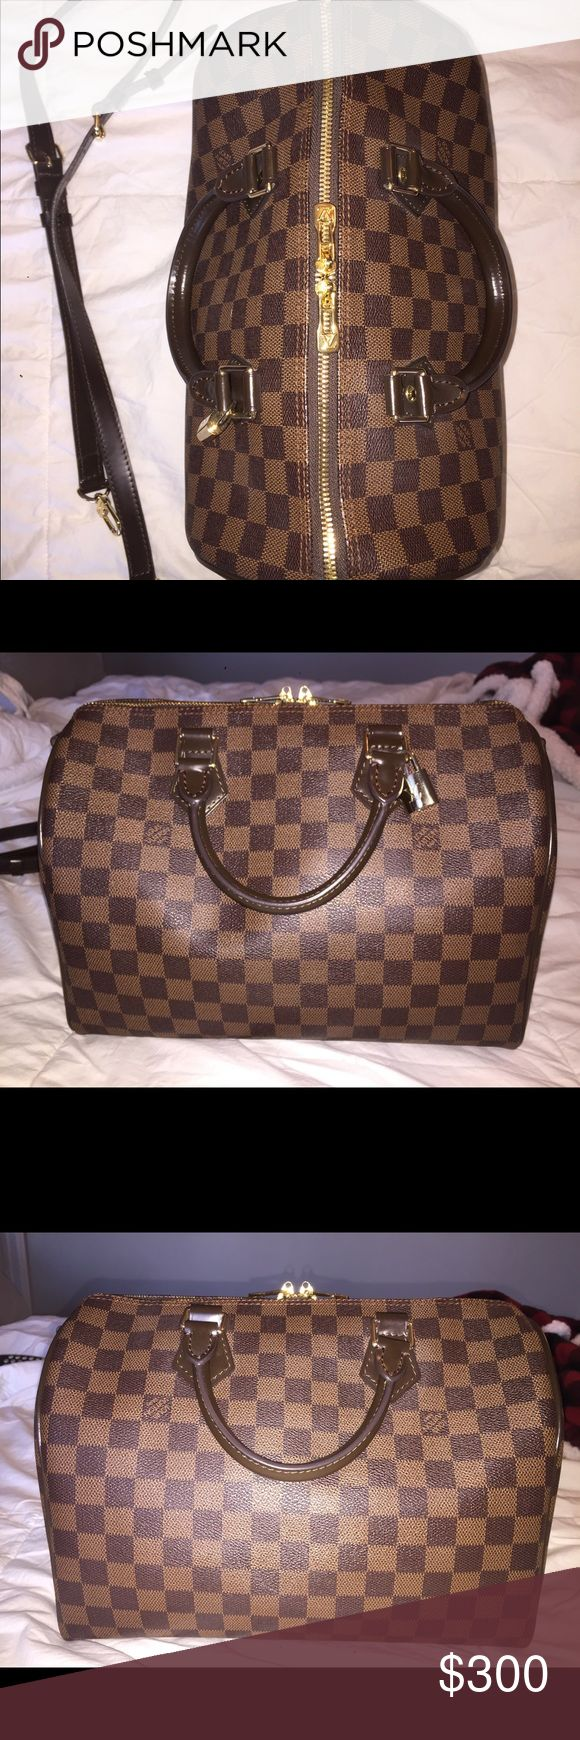 Speedy Bandouliere 30 Damier Ebene LV speedy bandouliere 30 in Damier Ebene, used a few times. Purchased on here, just don't use it enough! Gorgeous bag. Price reflects auth, listed for exposure. Open to offers :) Louis Vuitton Bags